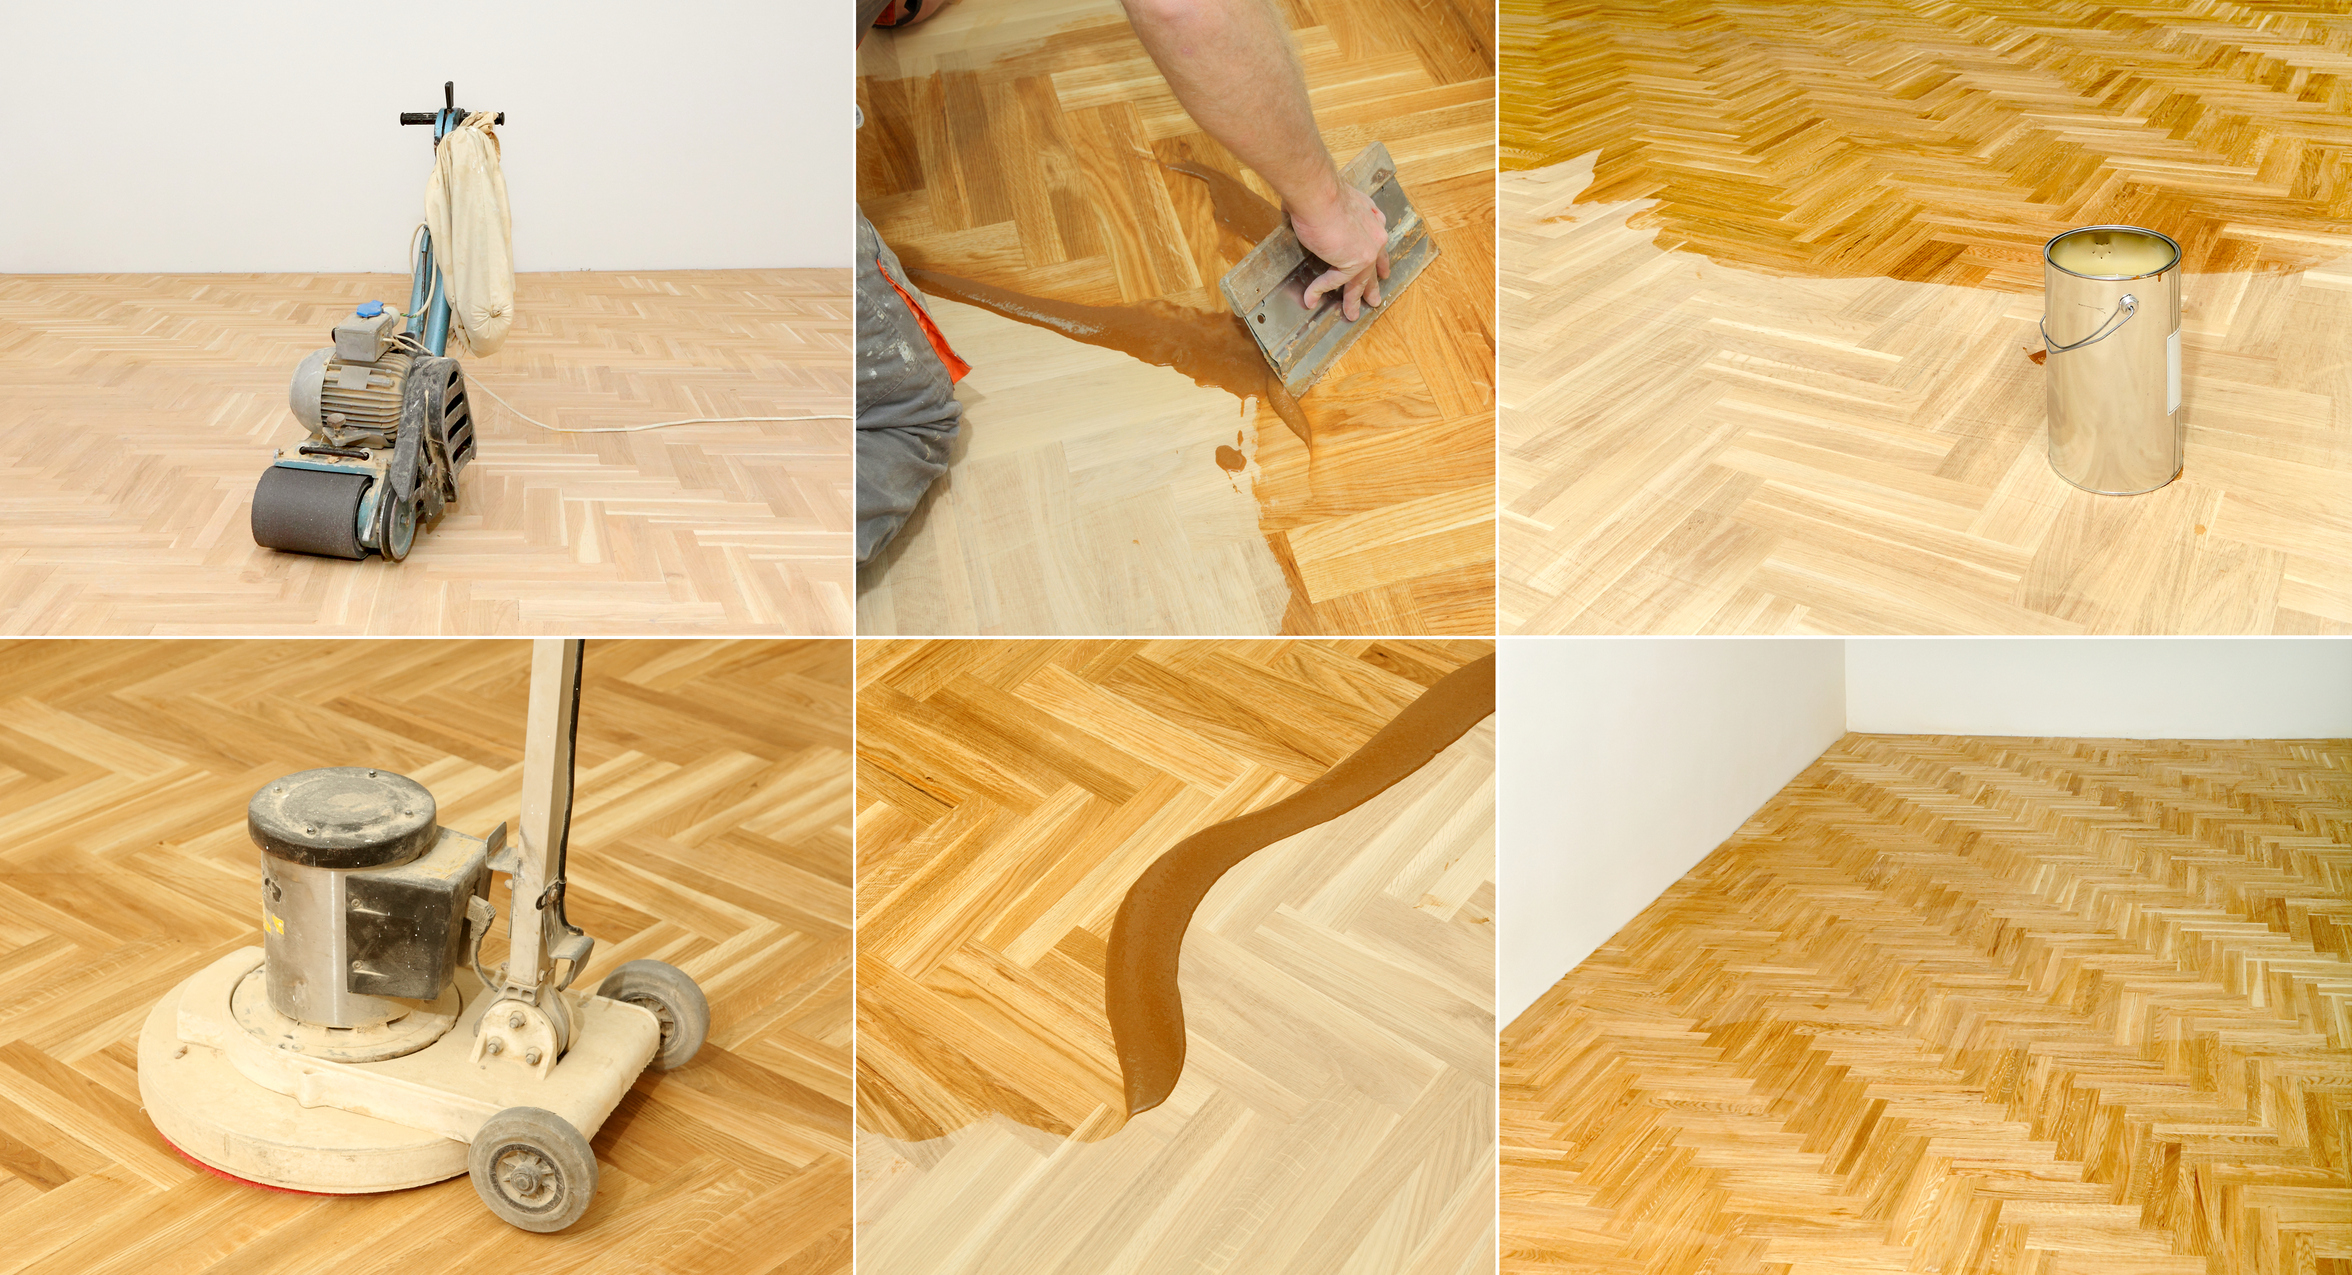 The stages of sanding and varnishing a floor